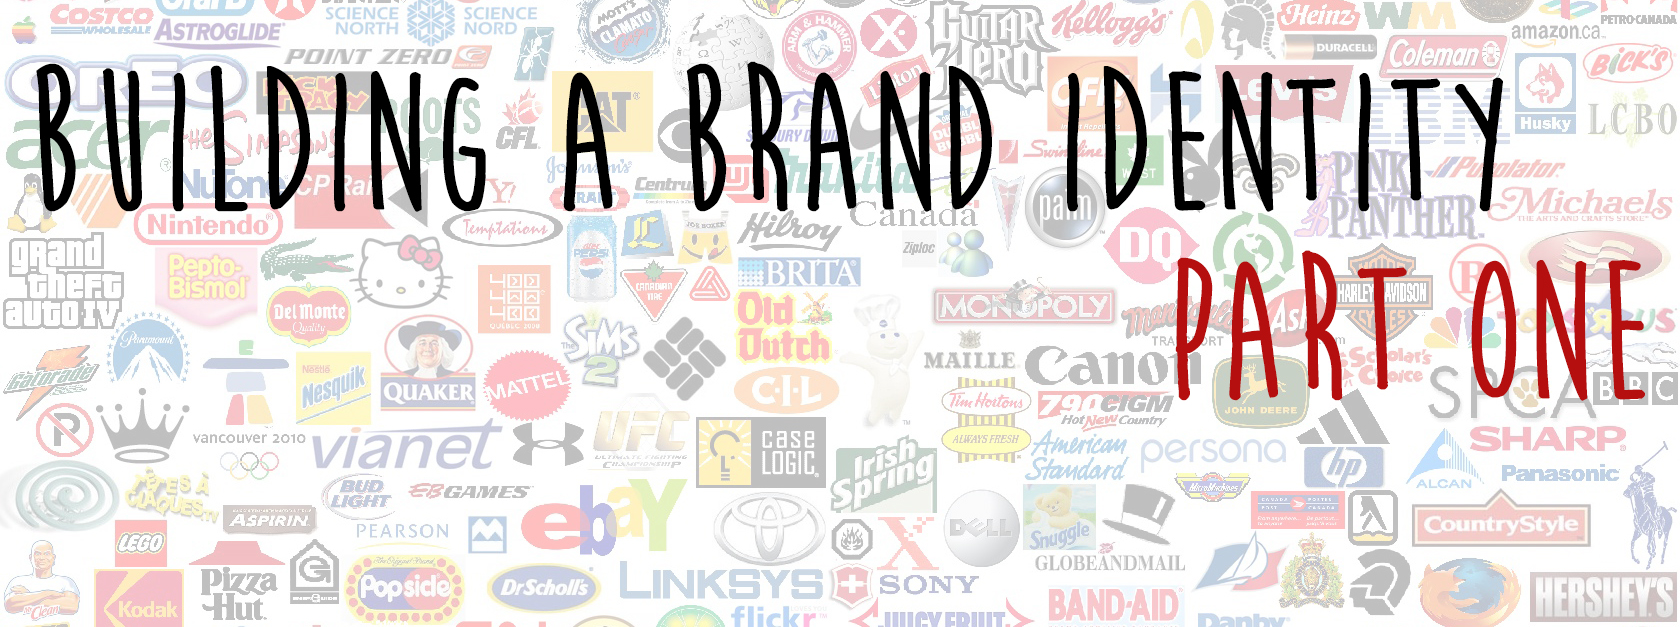 Building a Brand Identity: Part 1